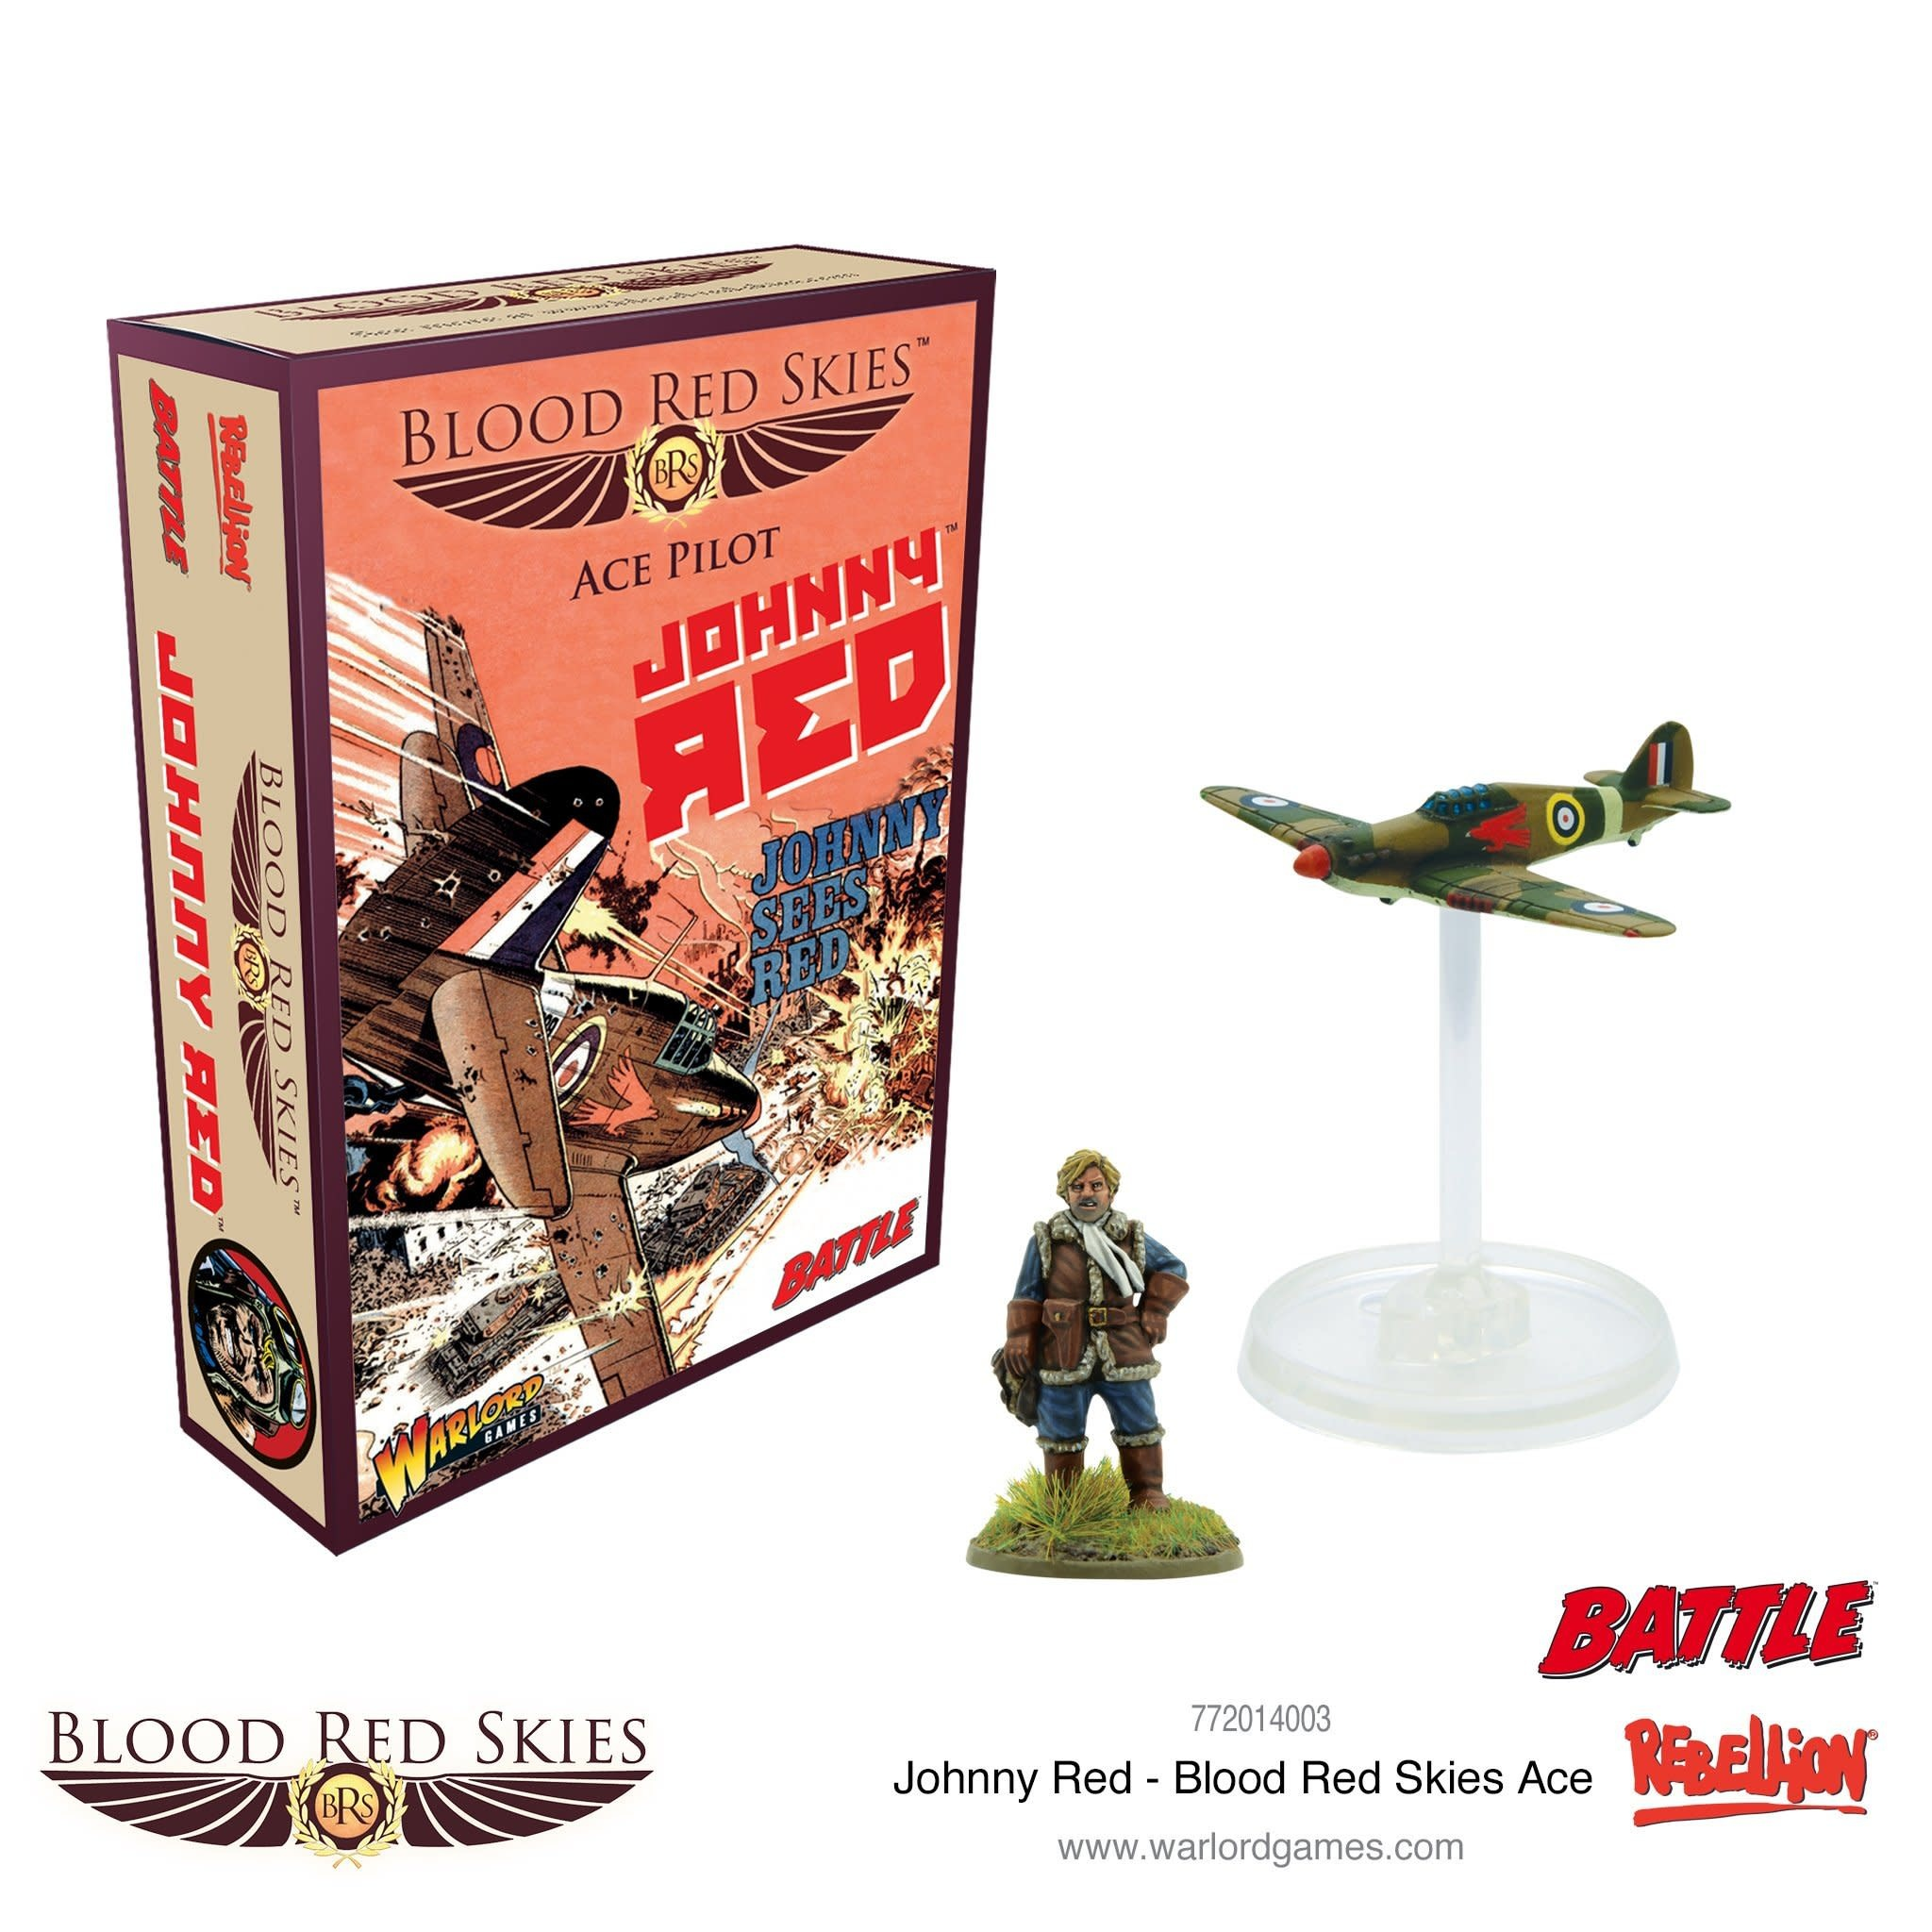 Warlord games Blood Red Skies: British, Ace Pilot Johnny Red